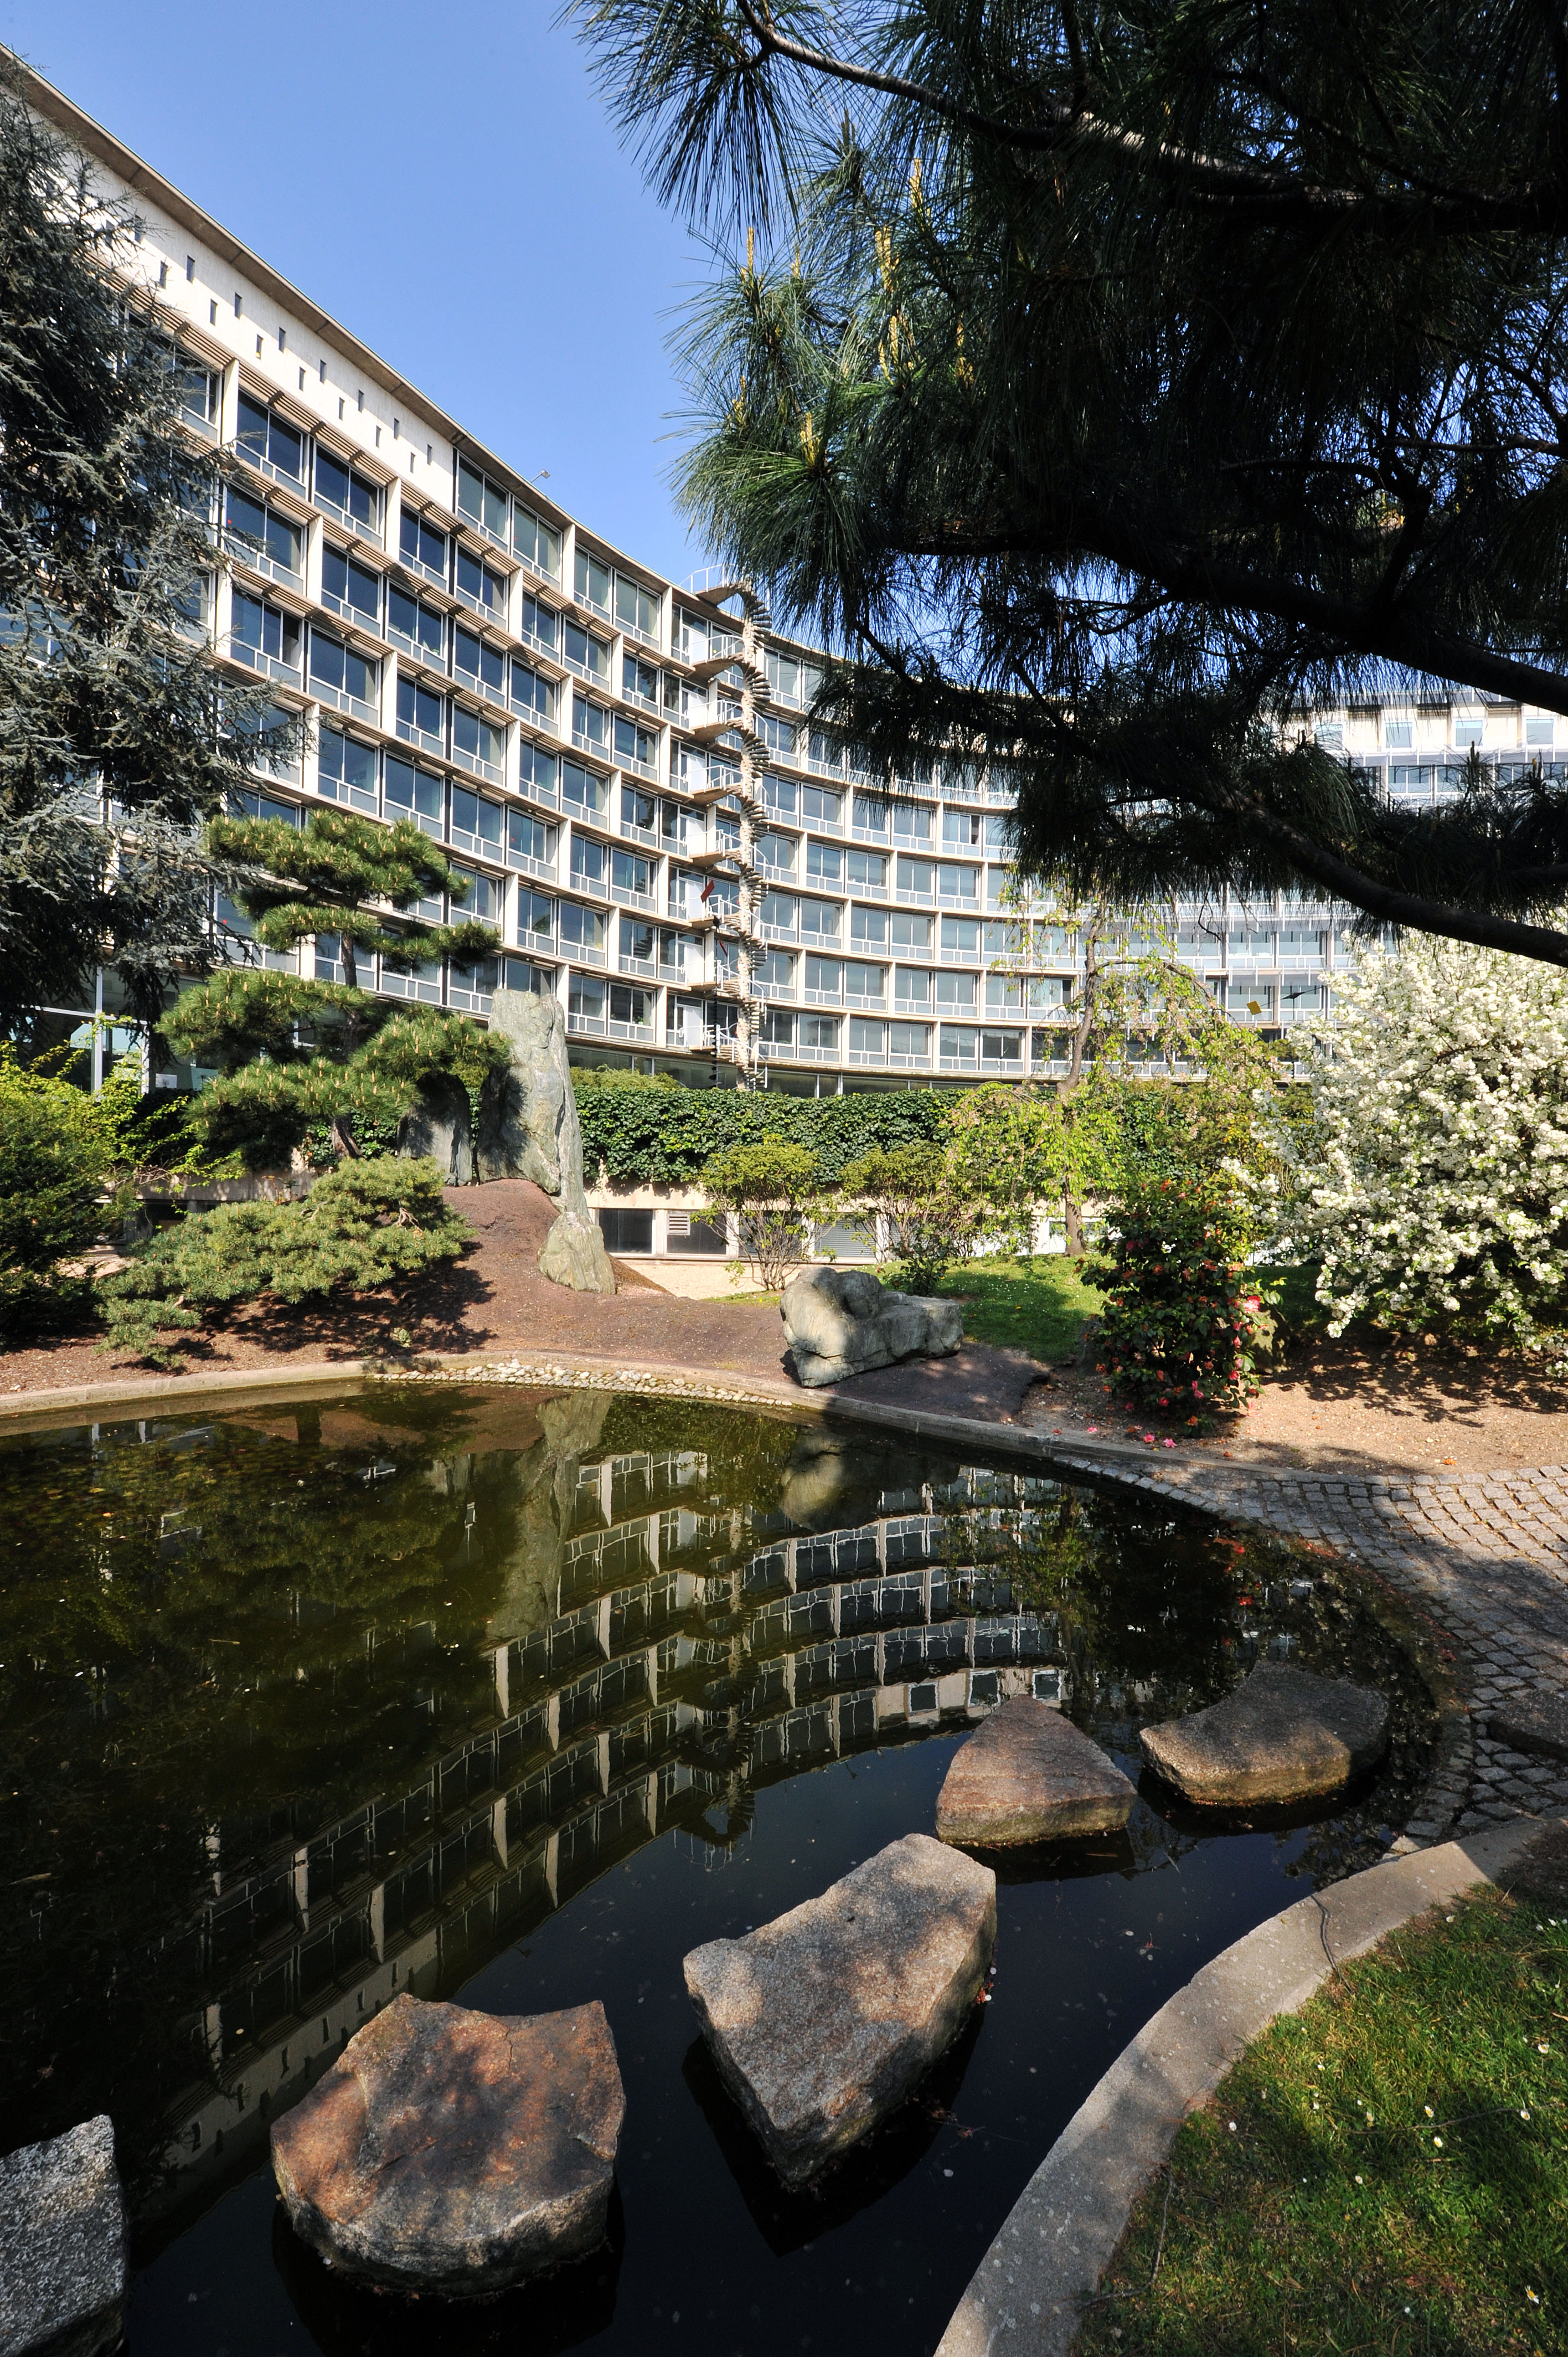 The Garden of Peace, UNESCO headquarters, Paris. Donated by the Government of Japan, this garden was designed by American-Japanese sculptor artist Isamu Noguchi in 1958 and installed by Japanese gardener Toemon Sano.